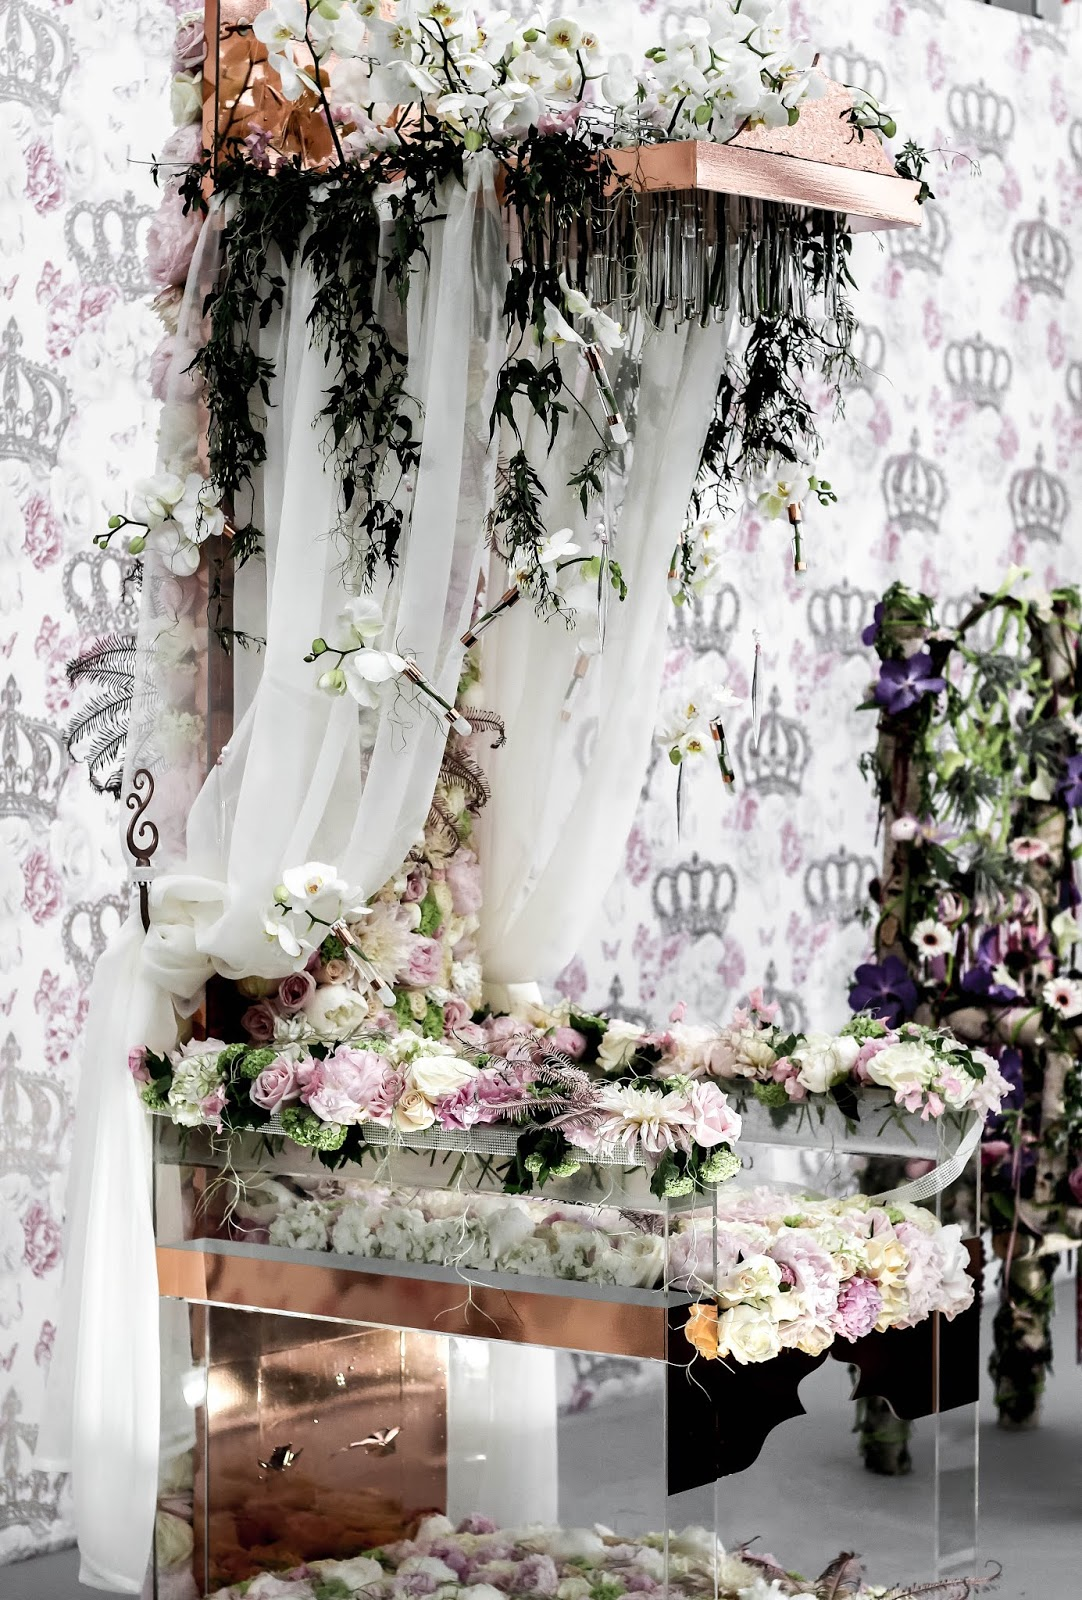 Thrones Young Florist Competition Chelsea Flower Show 2018